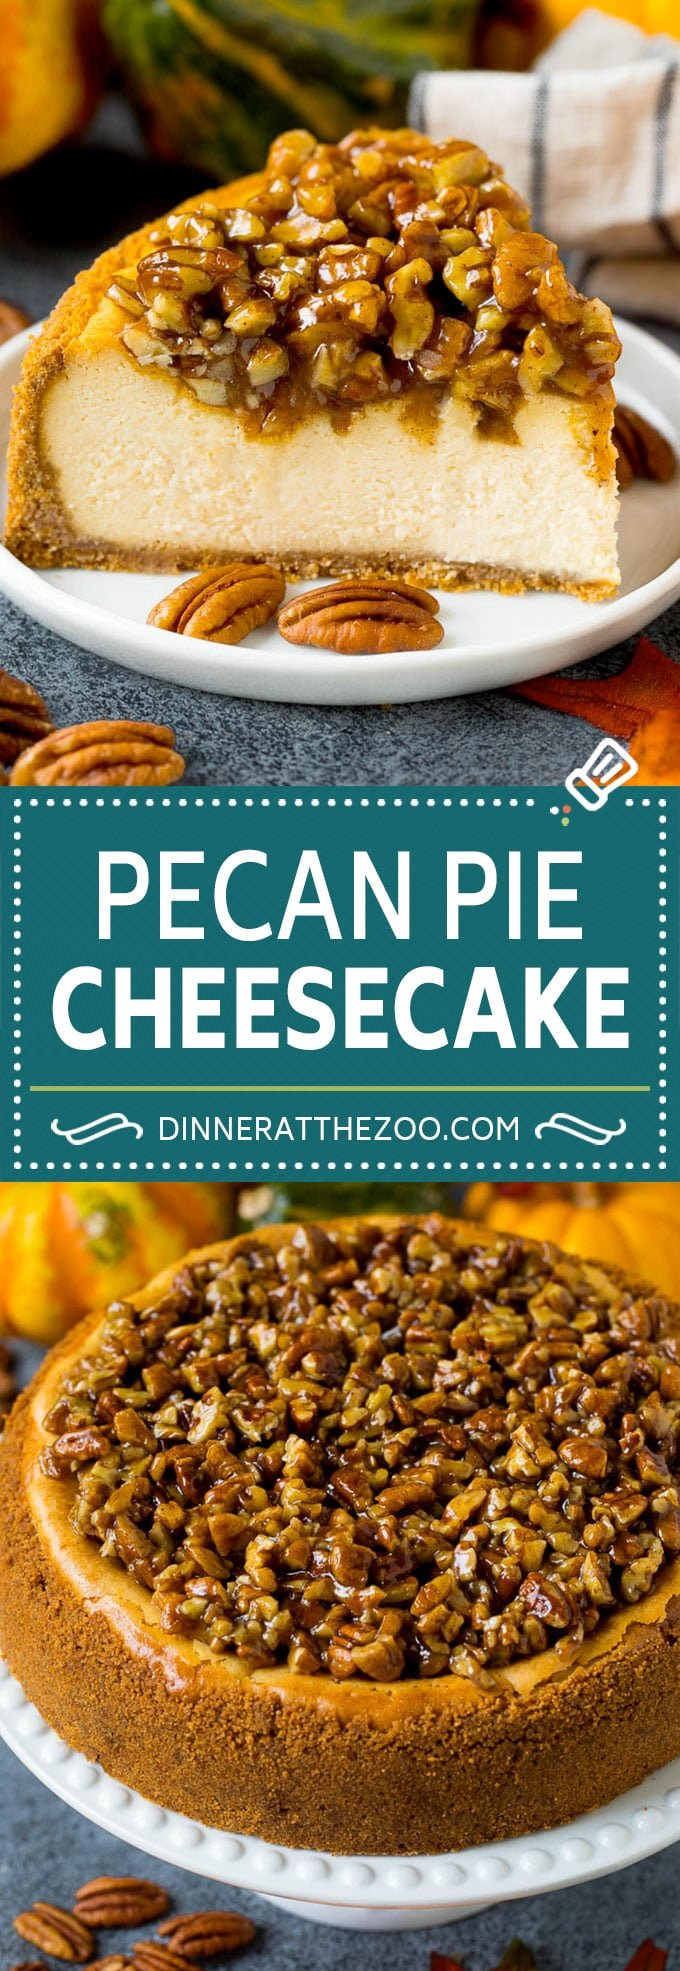 This pecan pie cheesecake is a creamy brown sugar cheesecake topped with a rich and decadent pecan sauce.